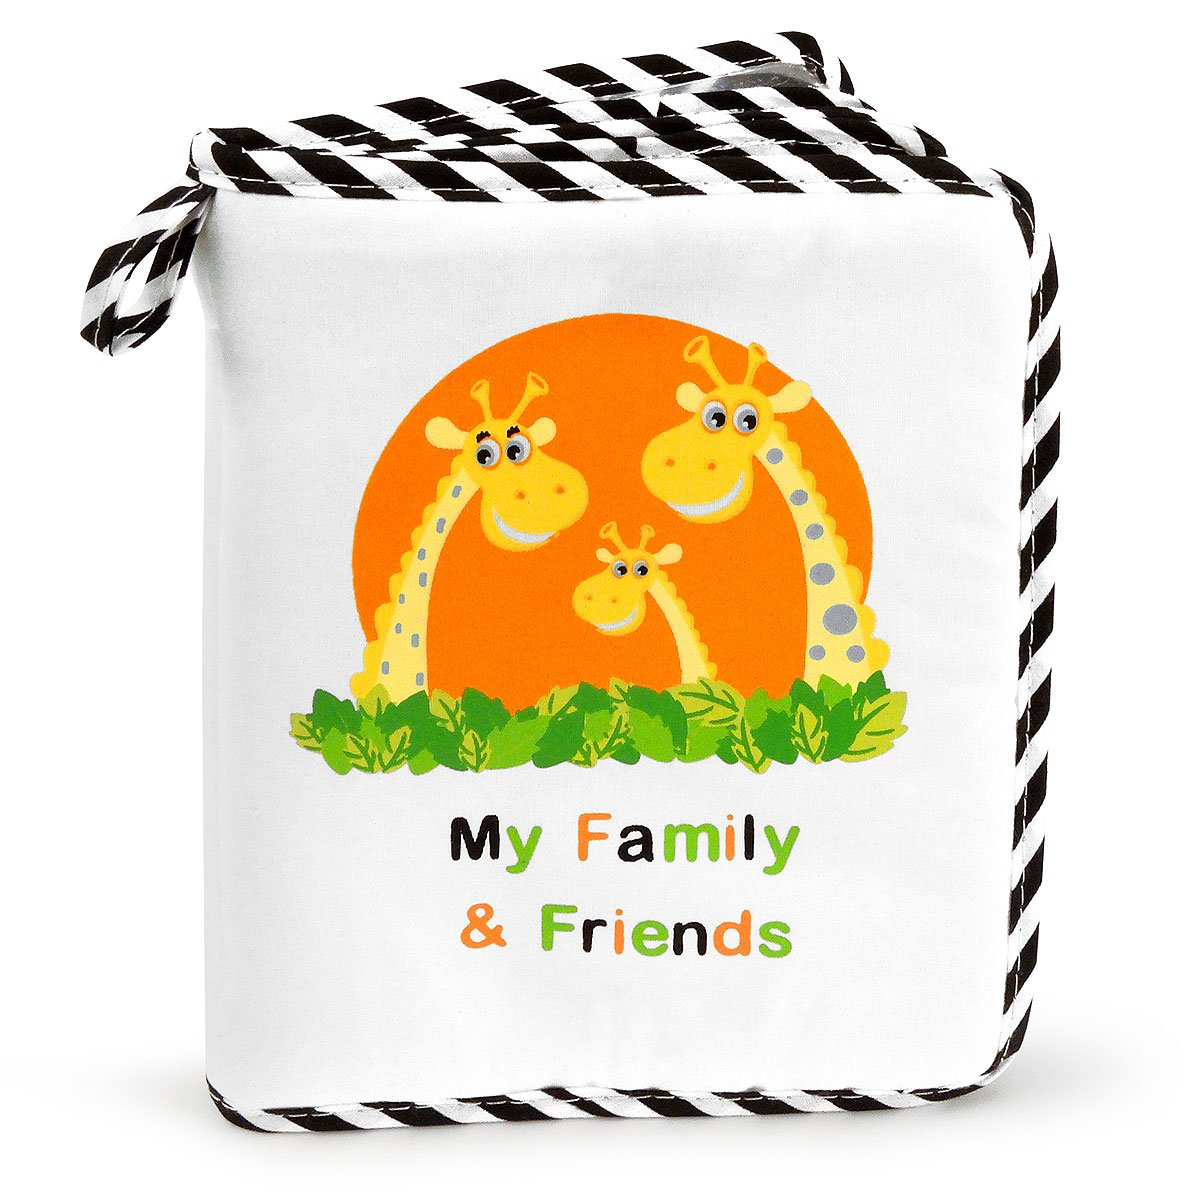 Baby's My Family & Friends First Photo Album - Cute Giraffe Family Theme! Genius Baby Toys GB-508